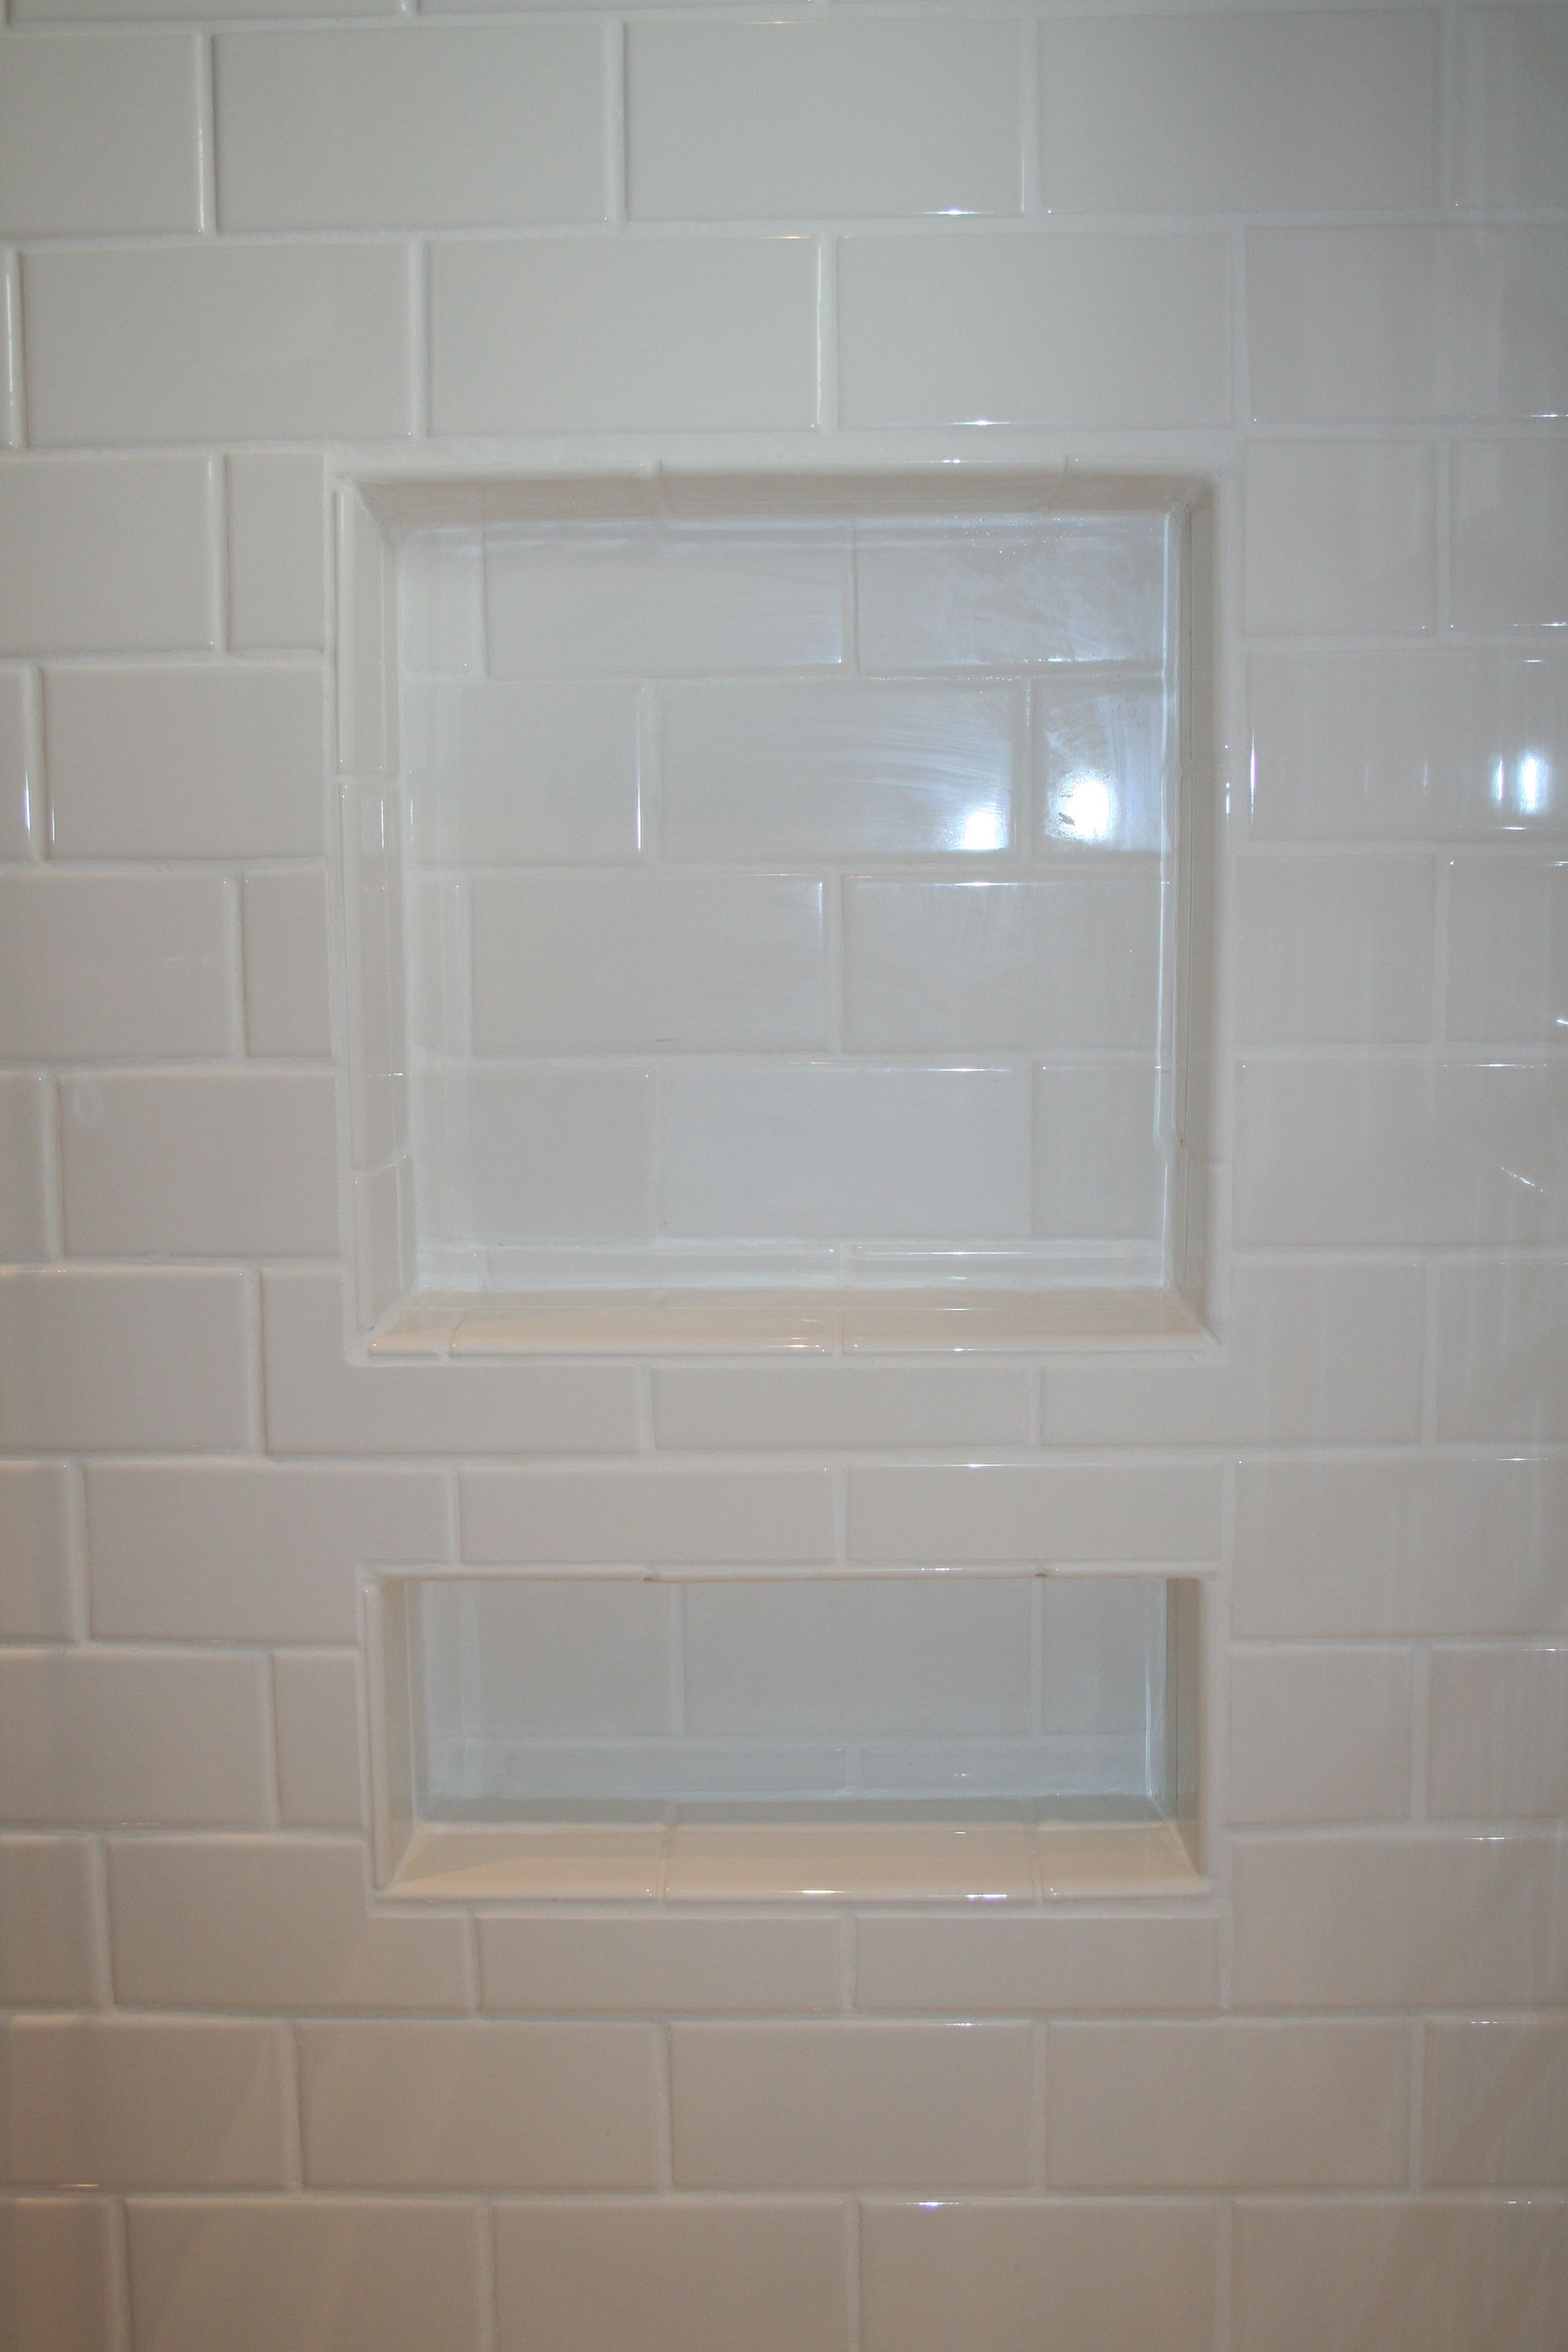 duk liner. shower shelf, niche, recessed | STYLED WITH DUK ...